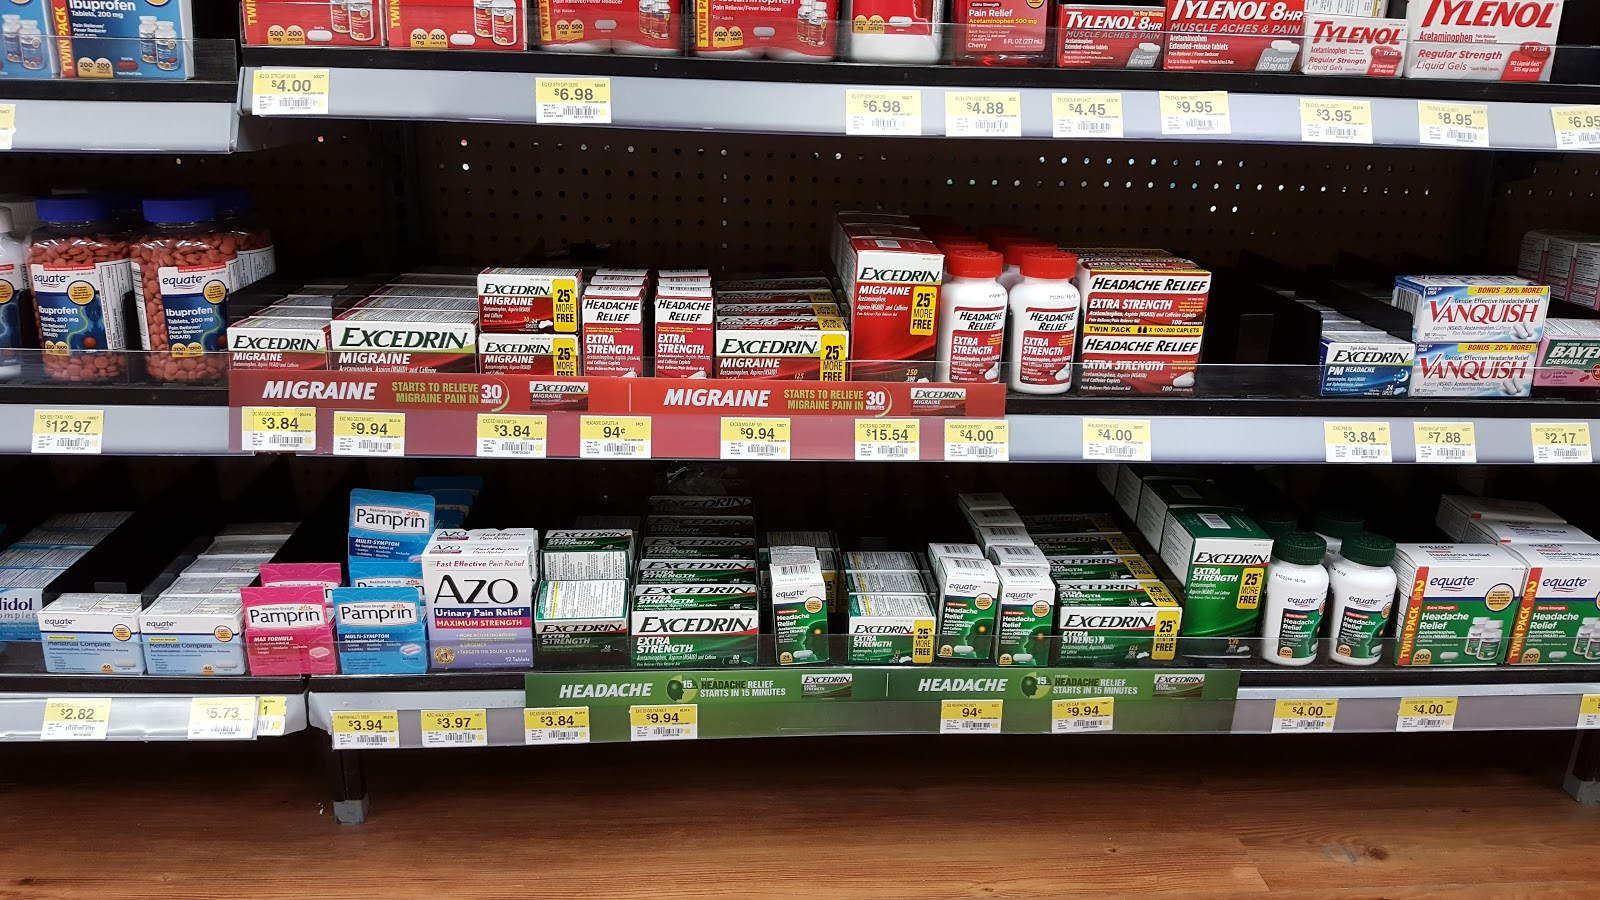 Walmart, Excedrin, Collective Bias, Migraine, Headache, Extra Strength